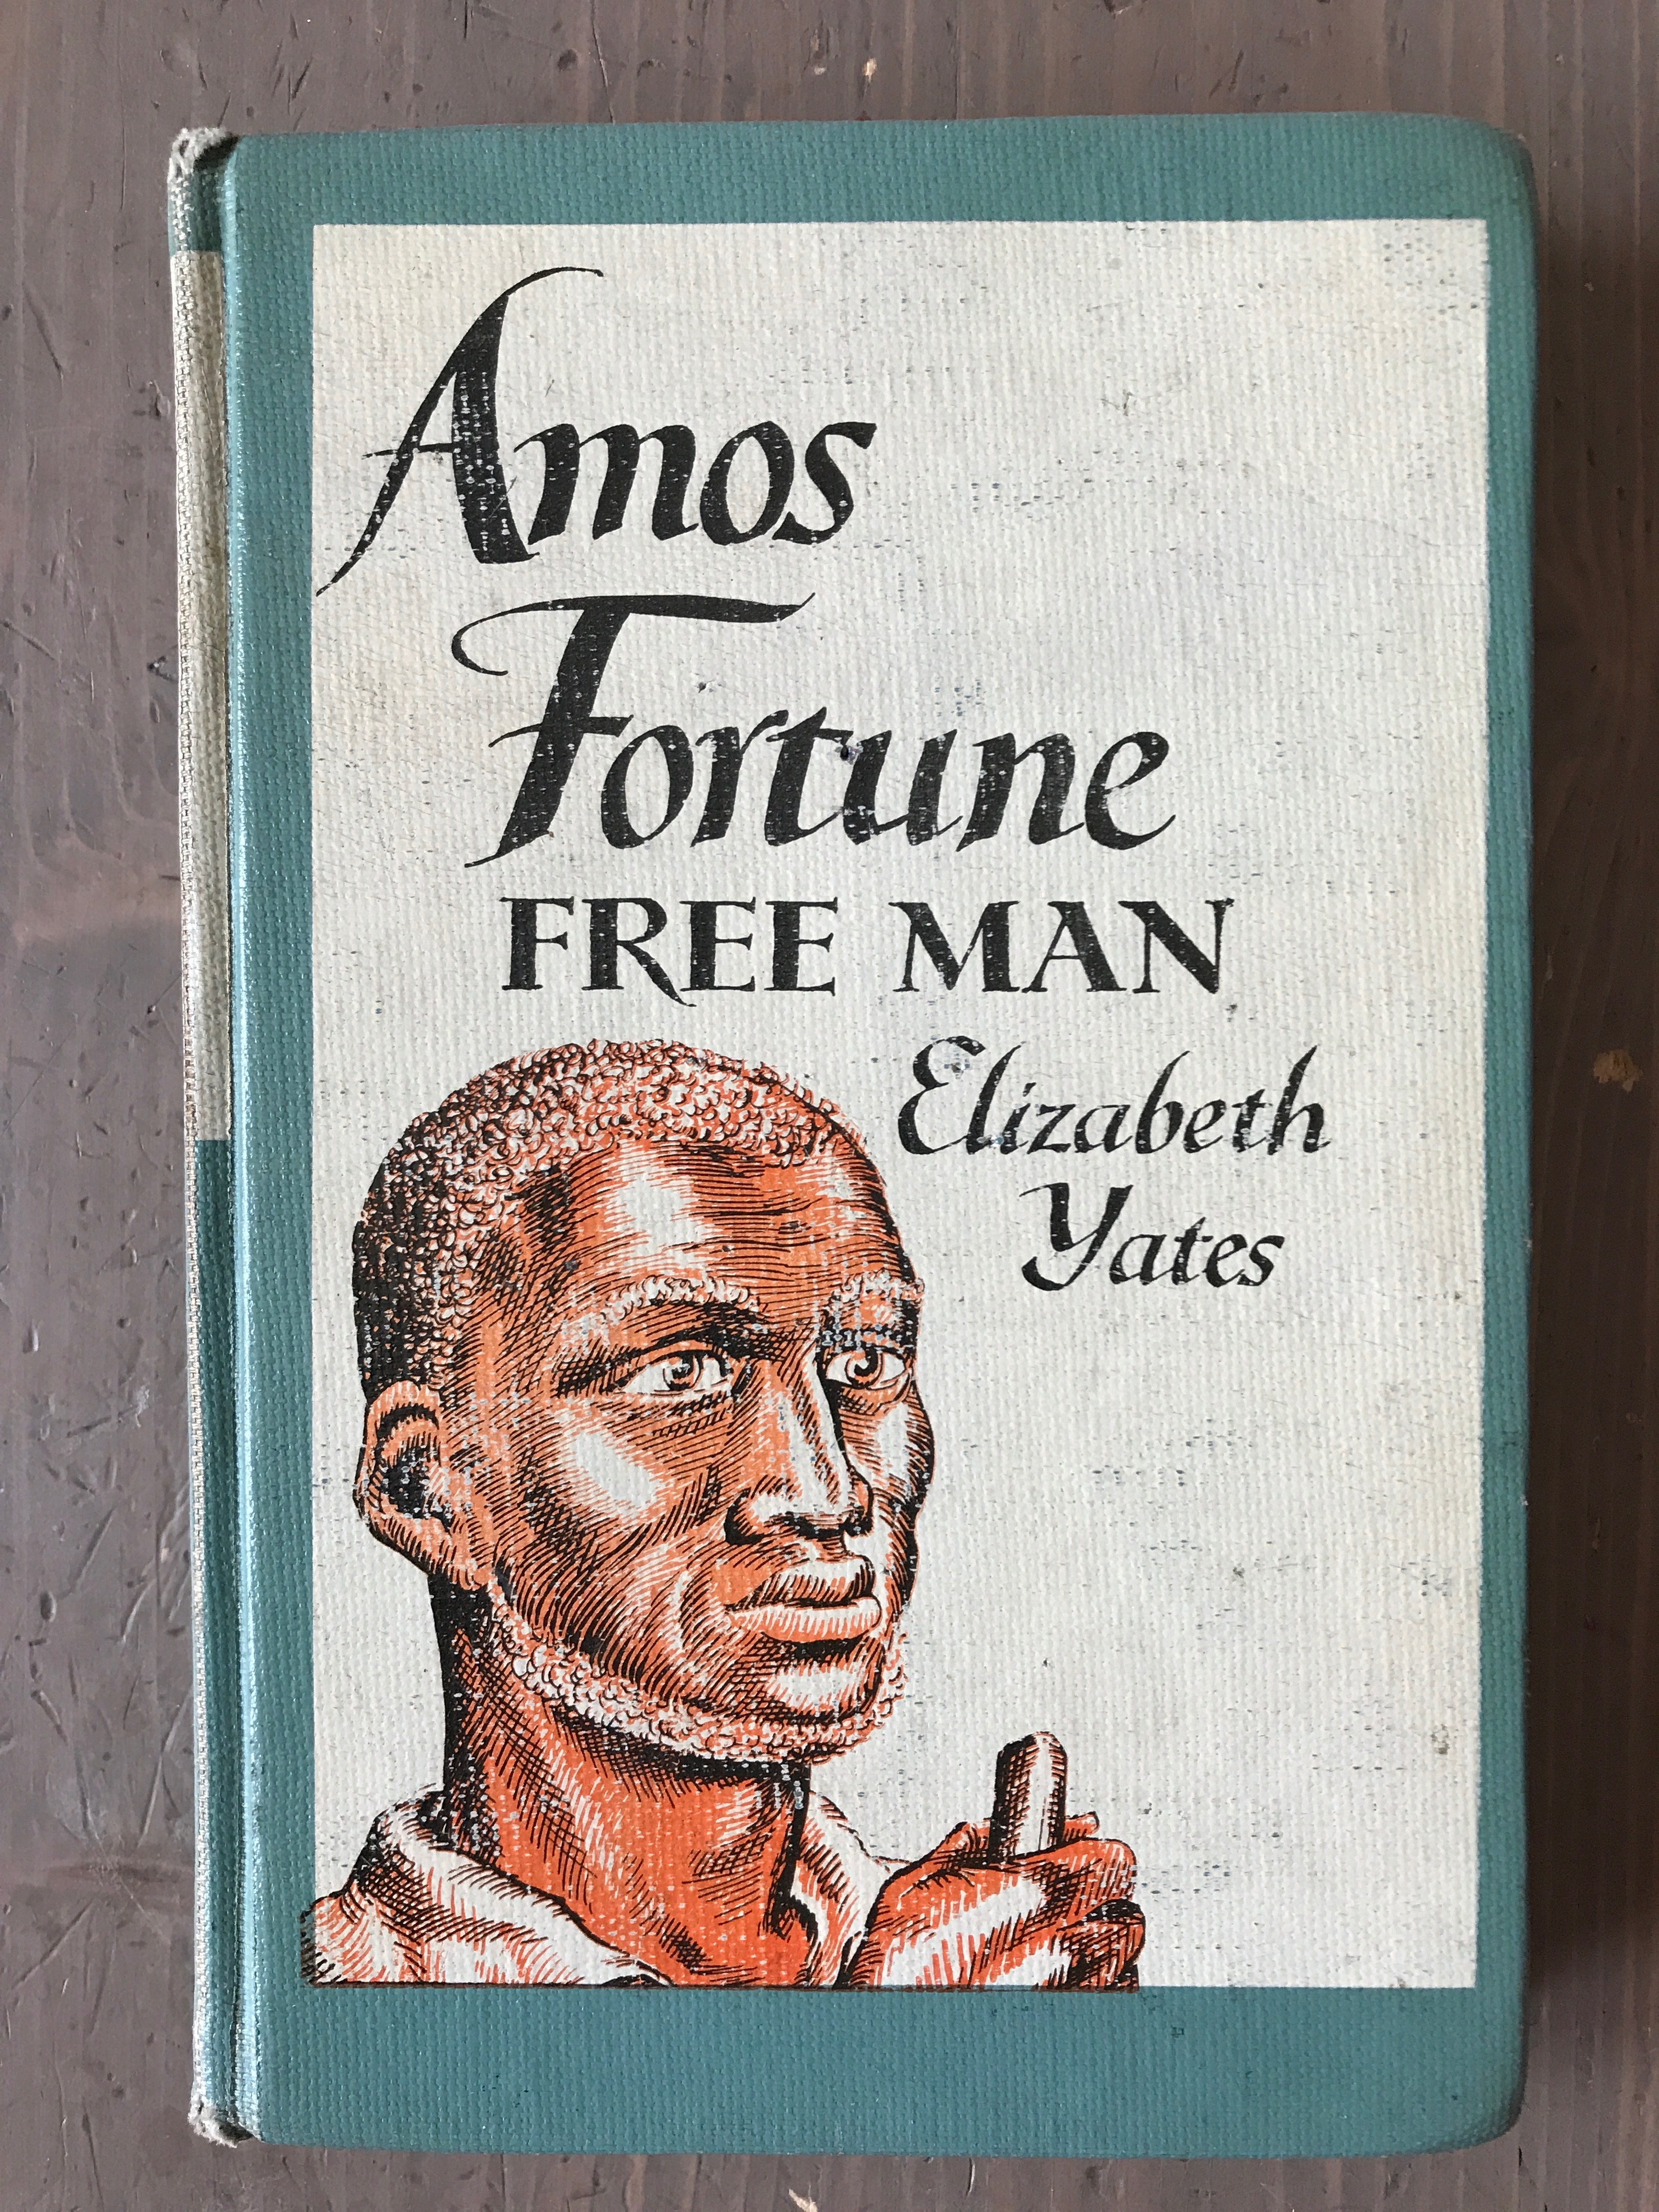 Amos Fortune Free Man, Elizabeth Yates, Book, People, Poster, HQ Photo